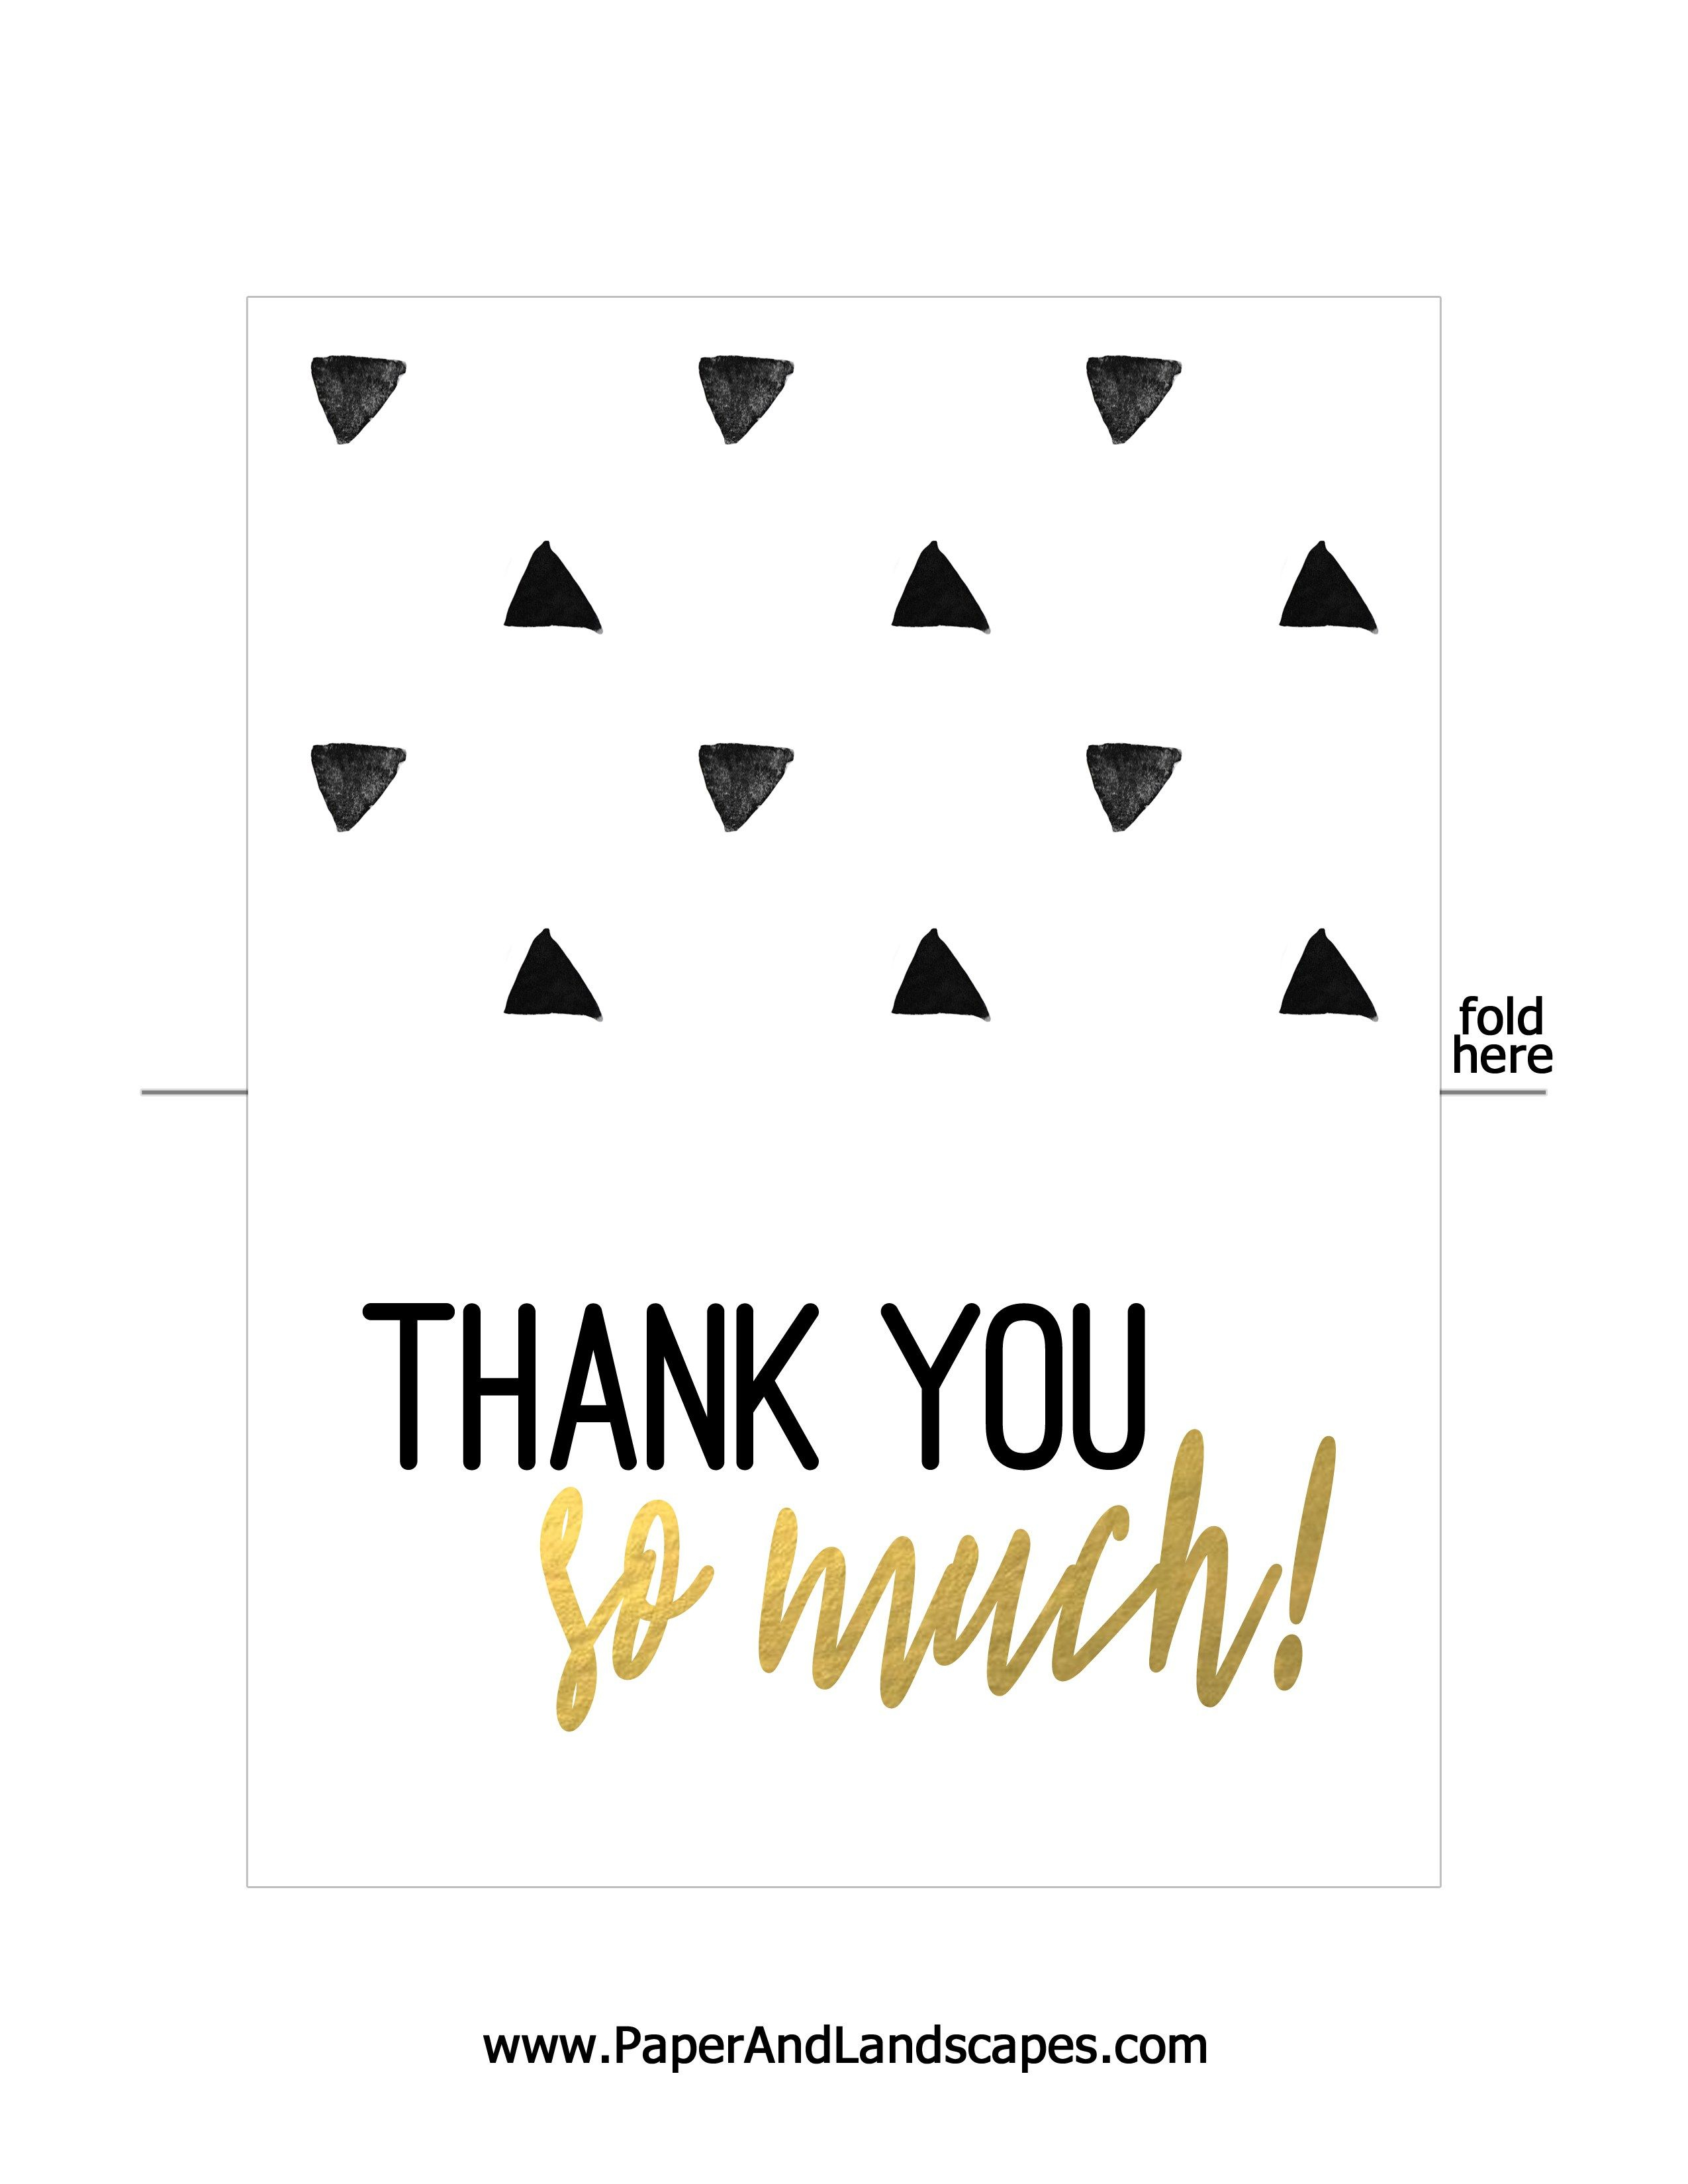 Free Printable Thank You Cards | Messenges - Free Printable Custom Thank You Cards